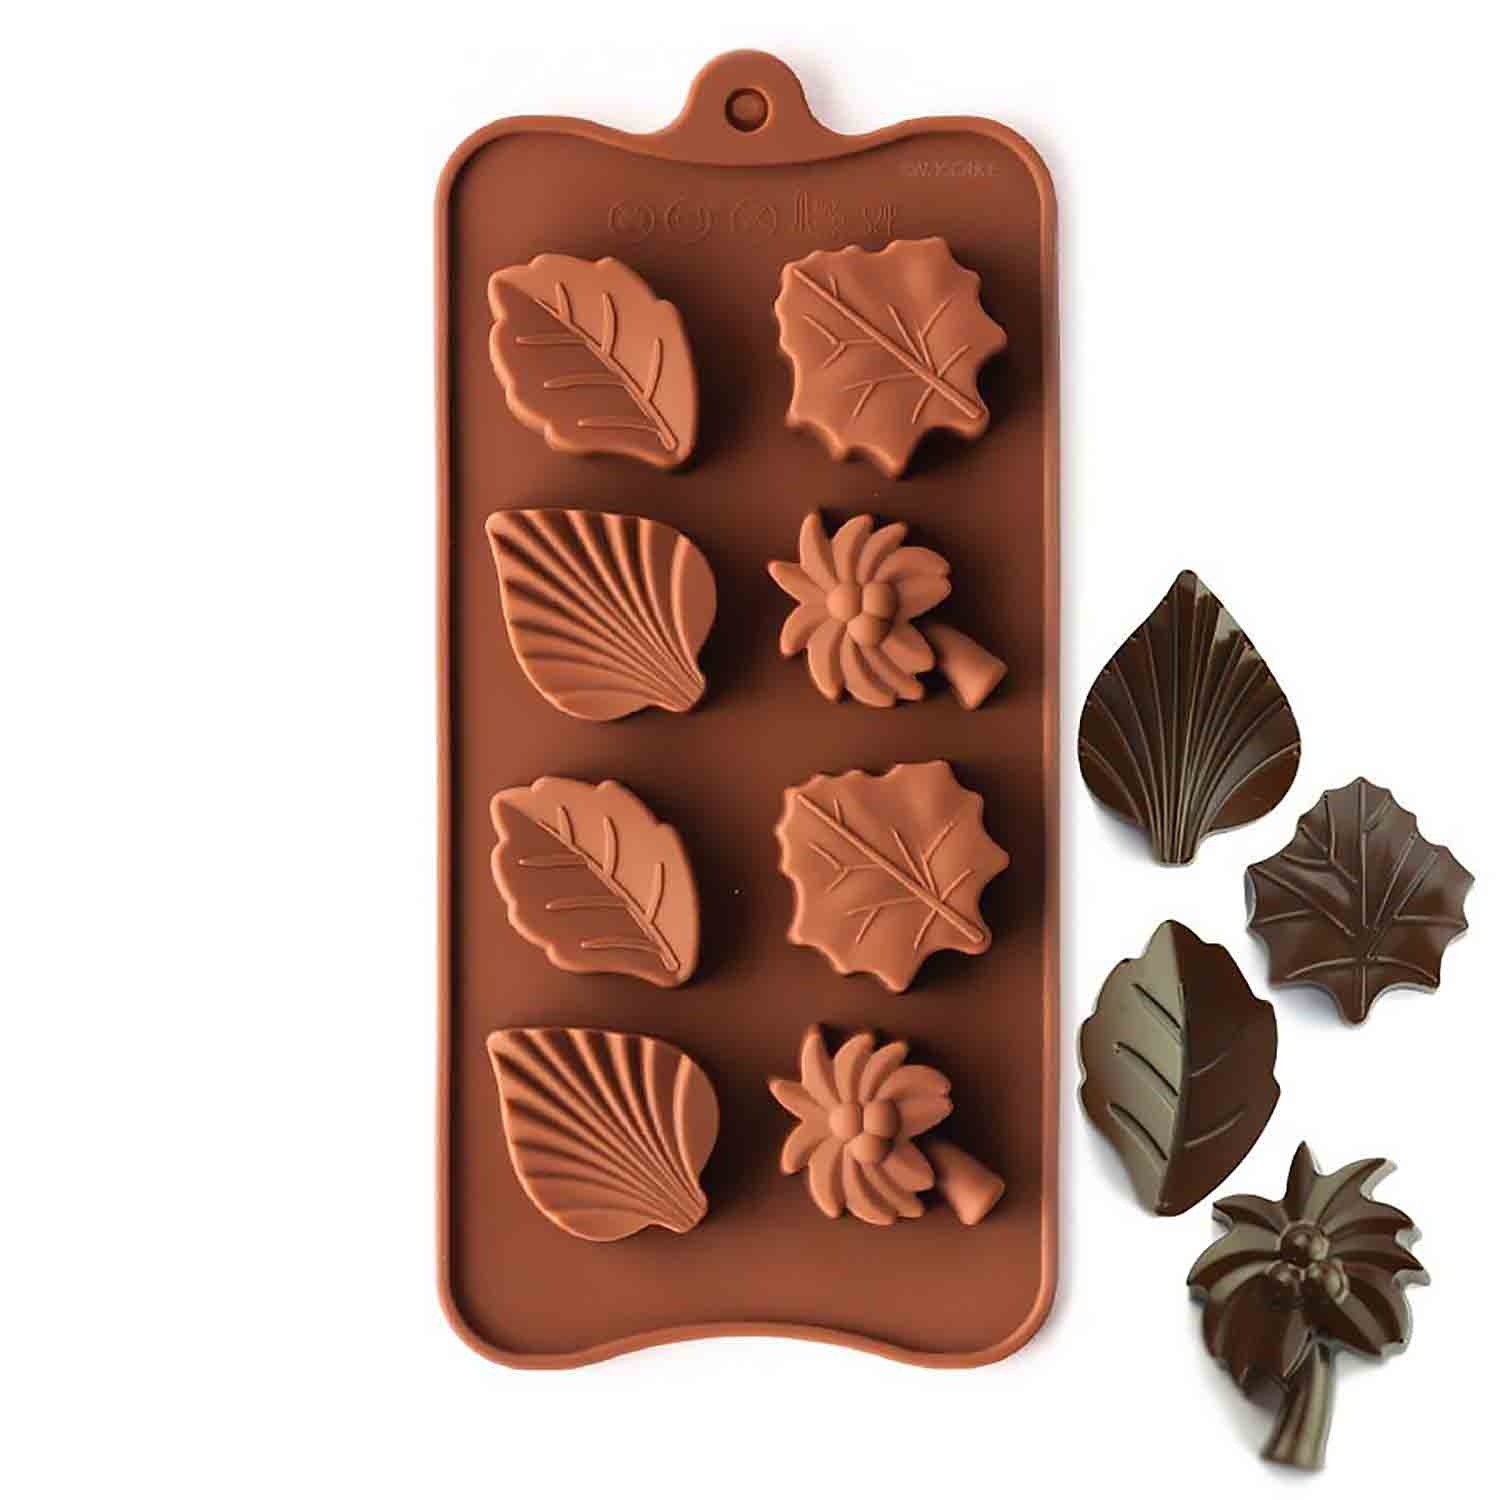 Plam Tree & Leaf Silicone Chocolate Candy Mold